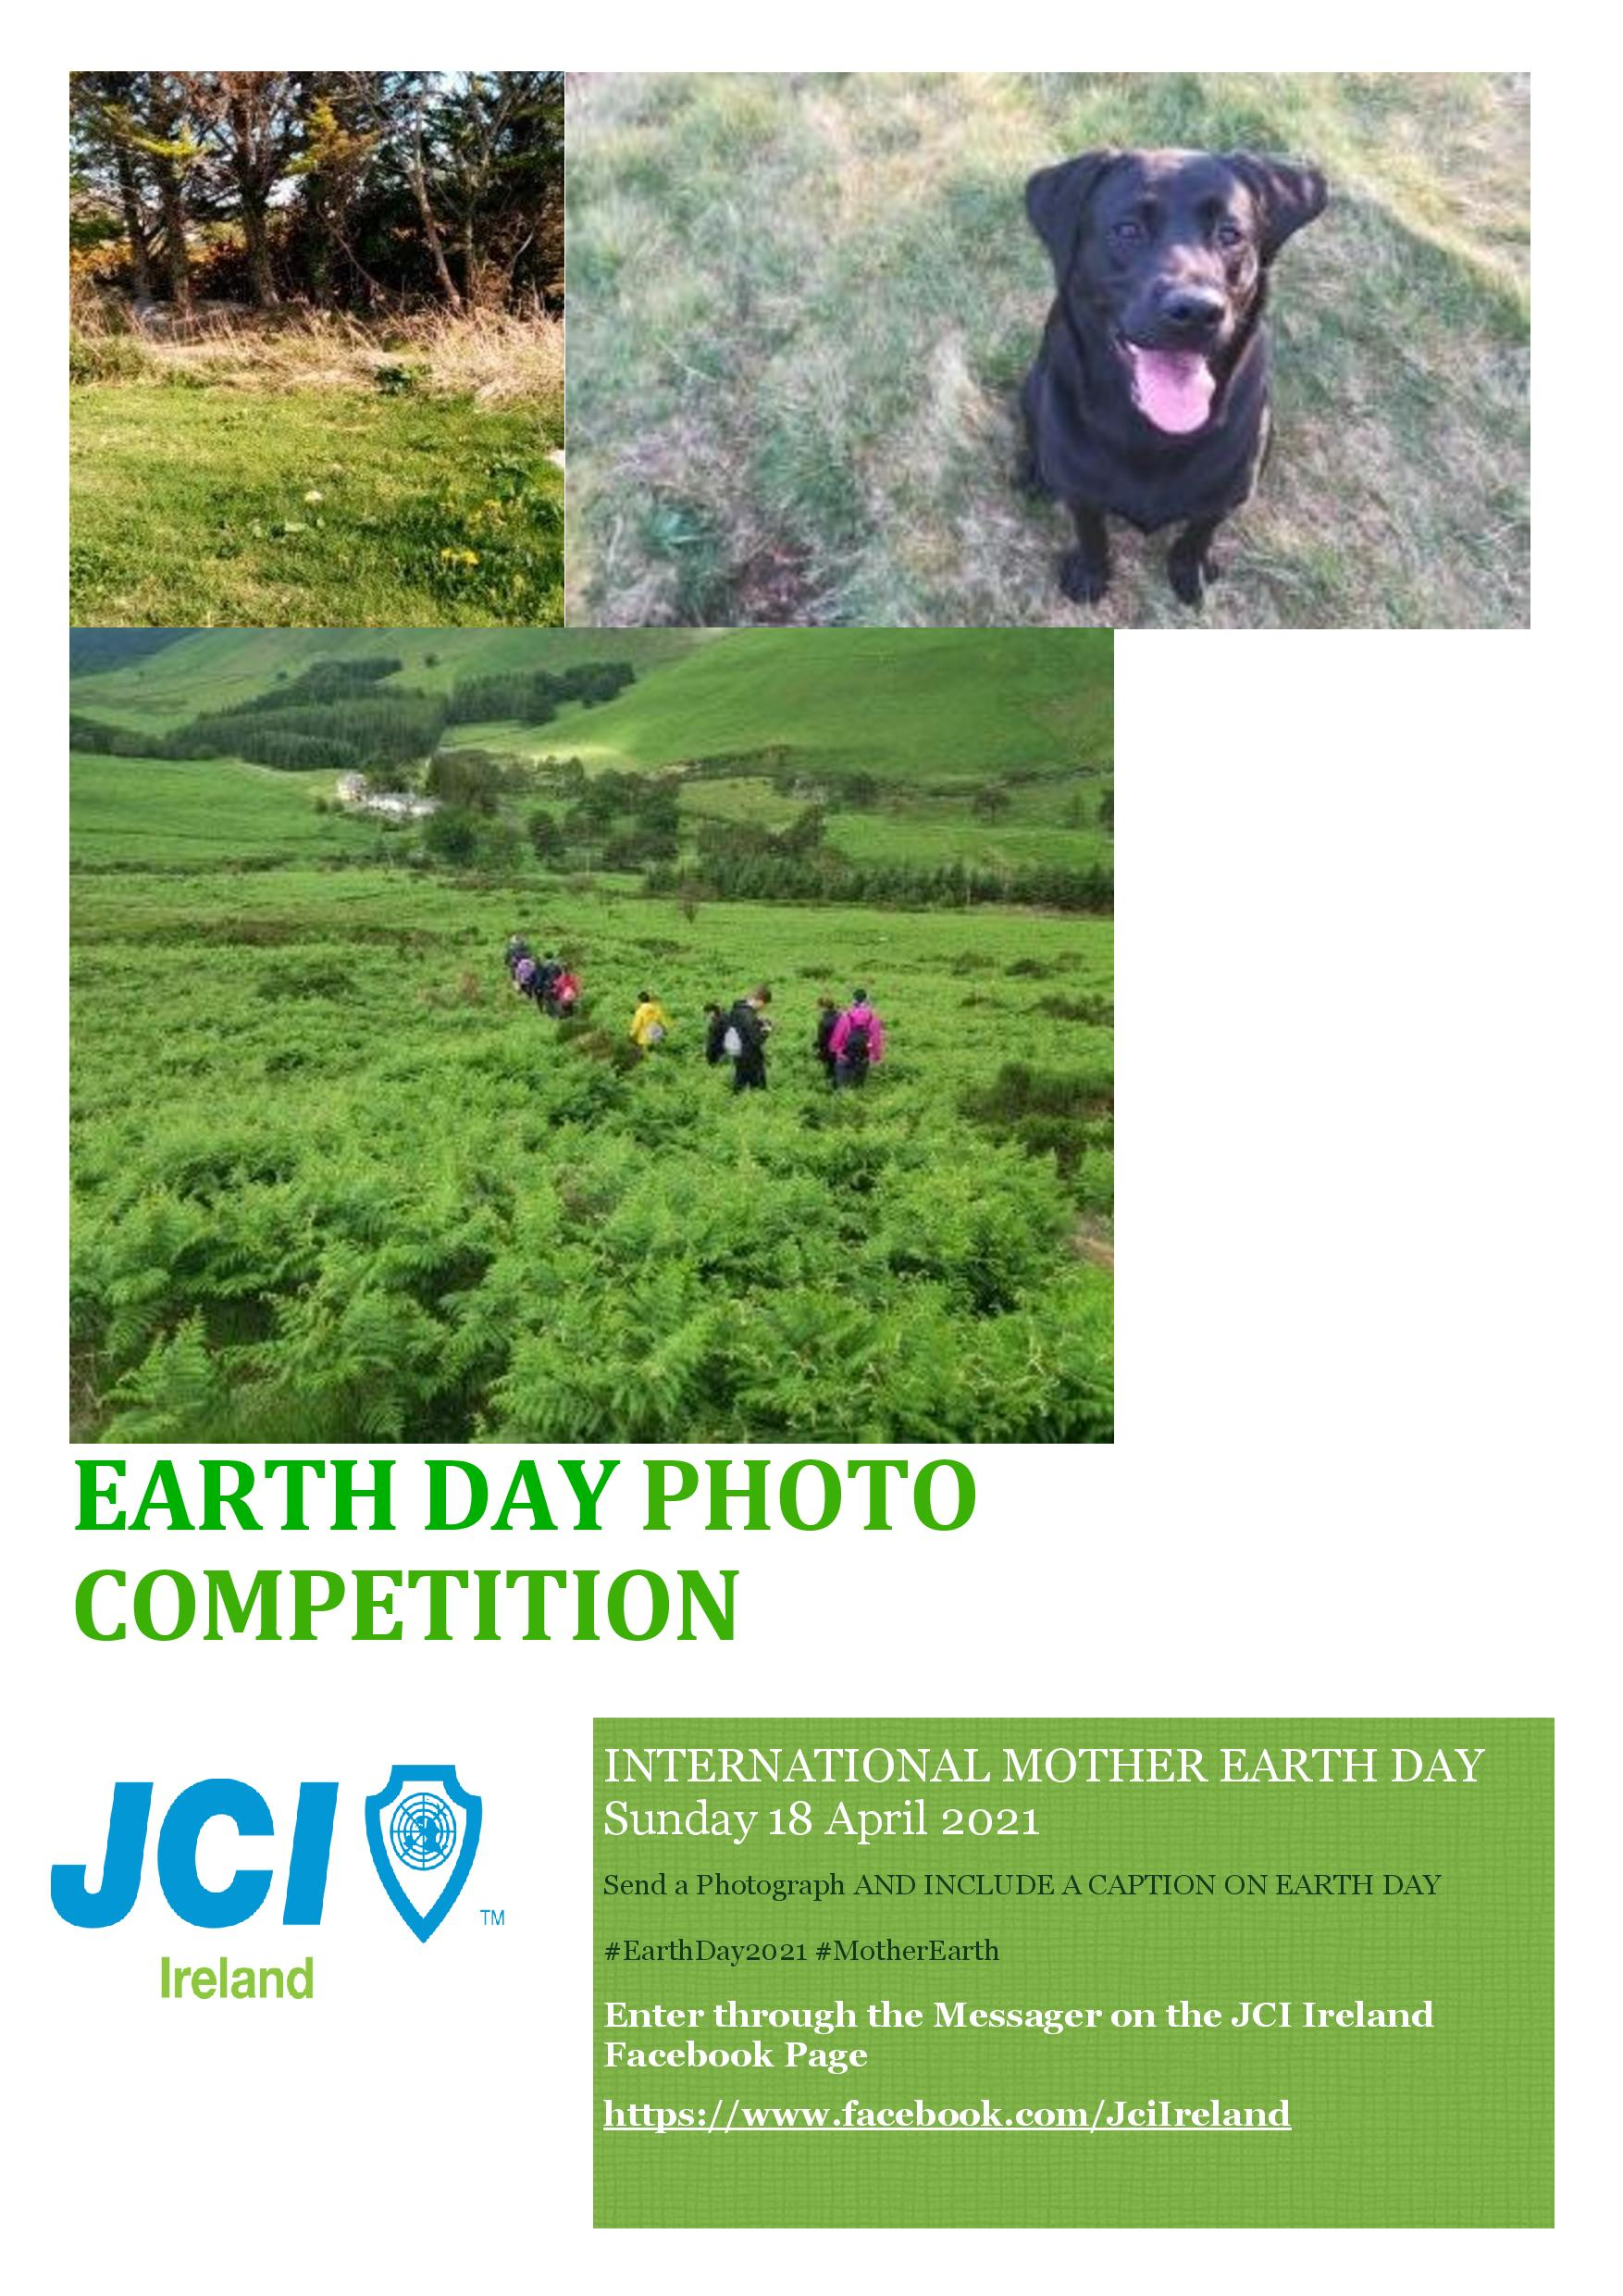 International Mother Earth Day Photo Competition - Deadline April 18th